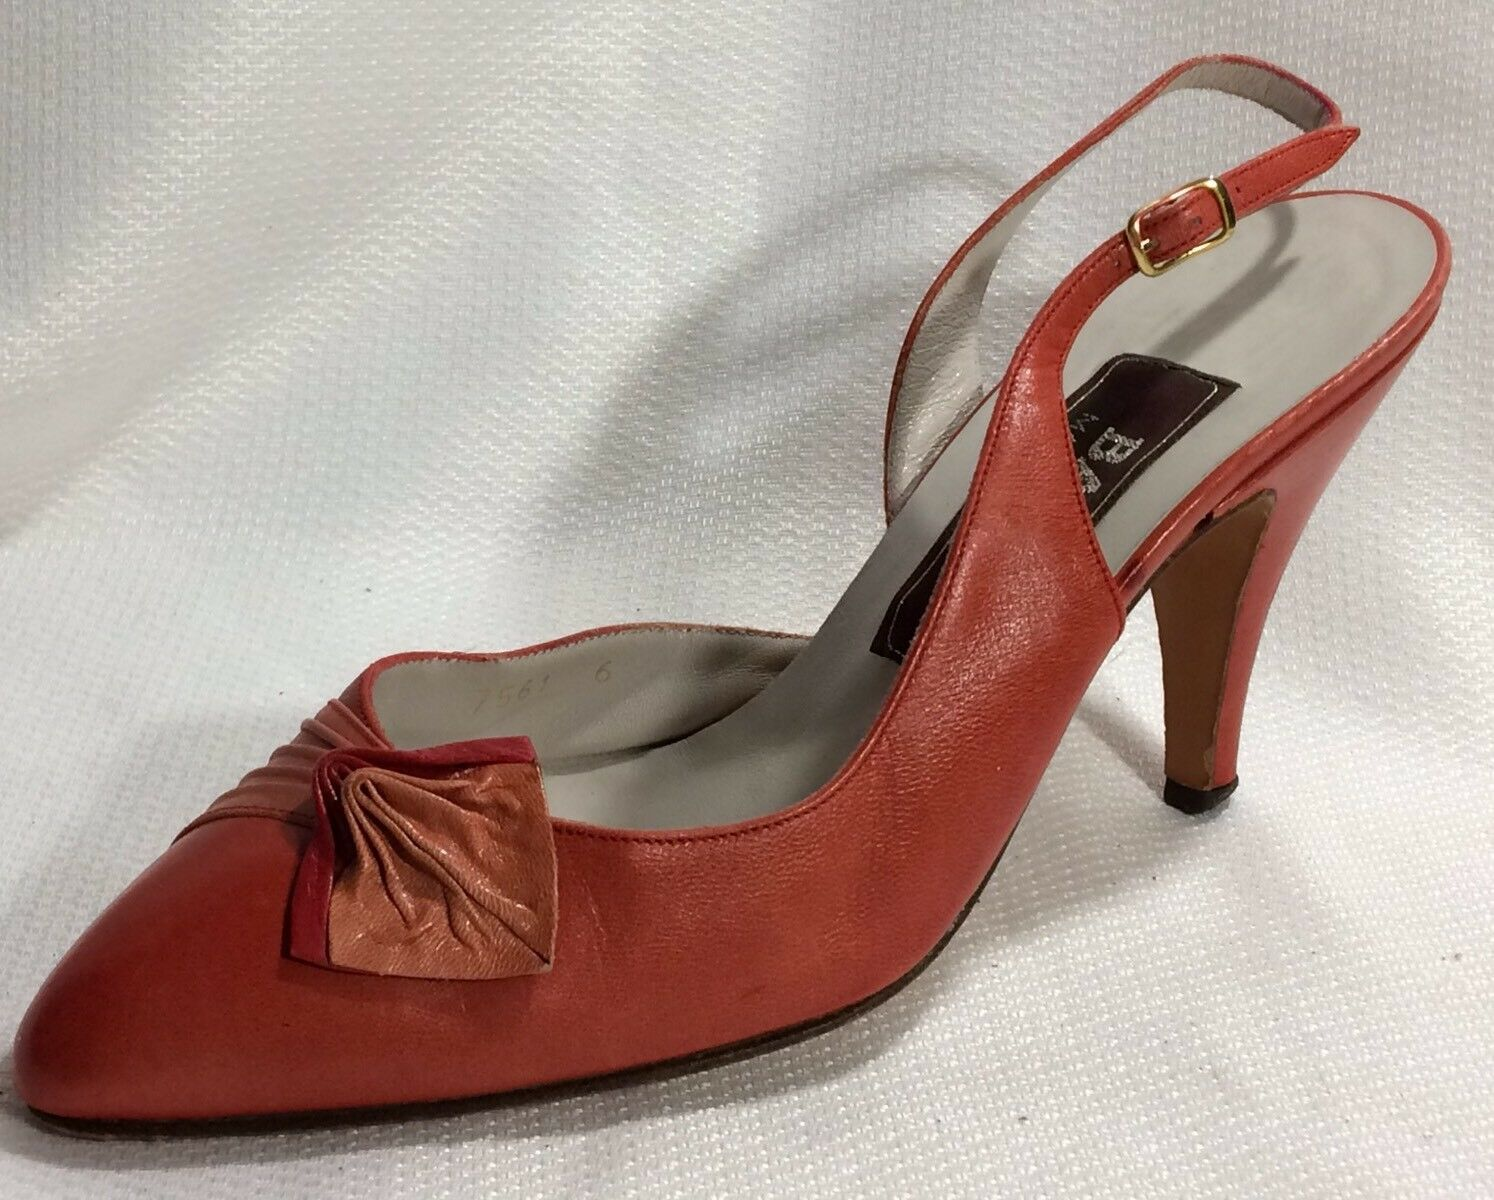 Bally  rouge Orange Leather Slingback Pump Heels femmes 6 M Pointed Toe chaussures